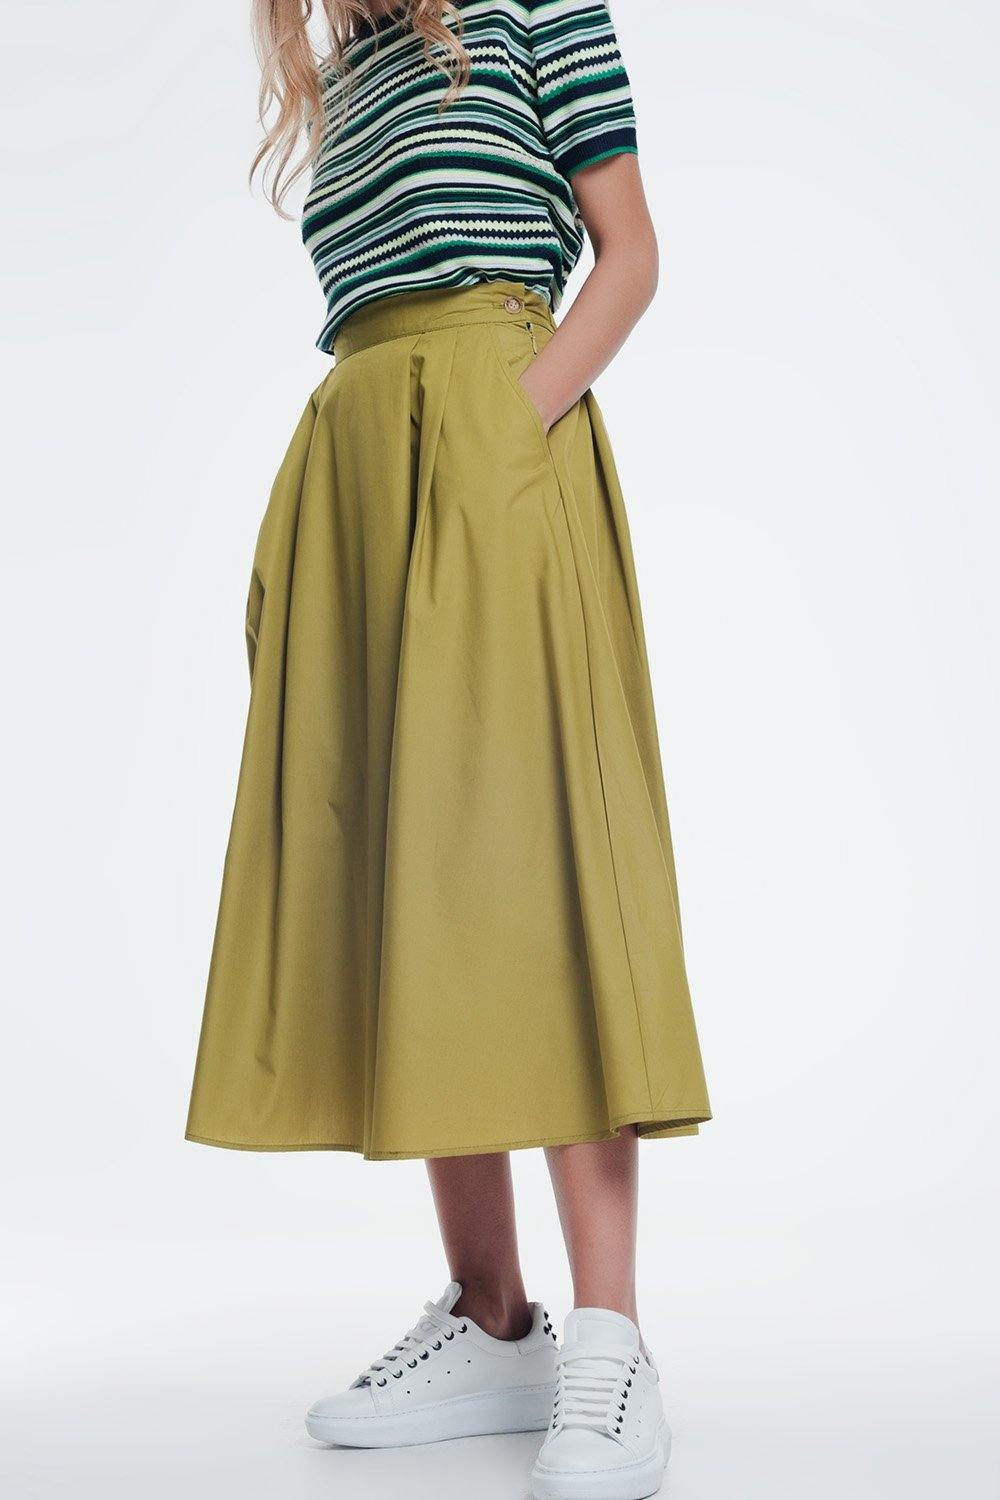 Q2 poplin green skirt with thick waistband